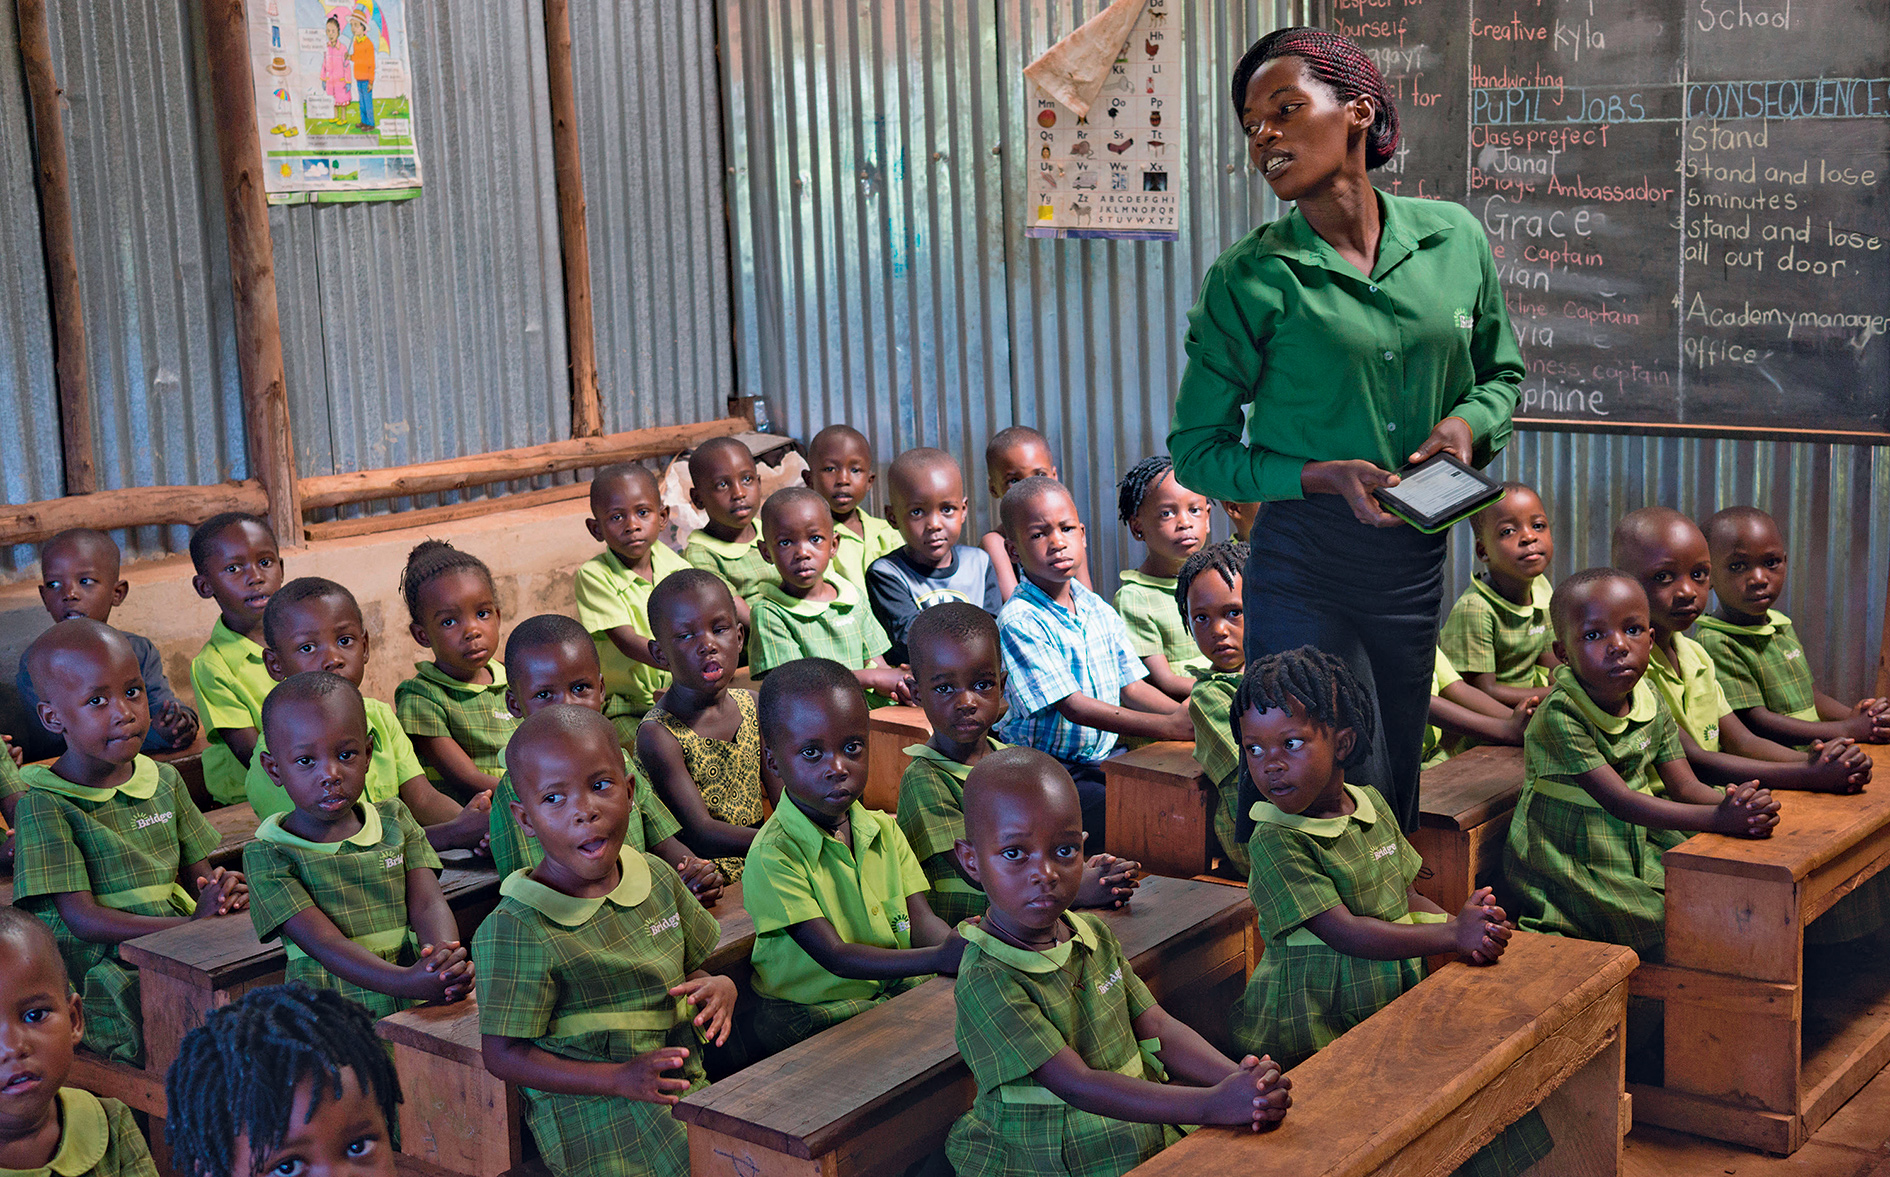 Education by e-book? A teacher and her class at low-cost private school  Bridge in Mpigi, Uganda.